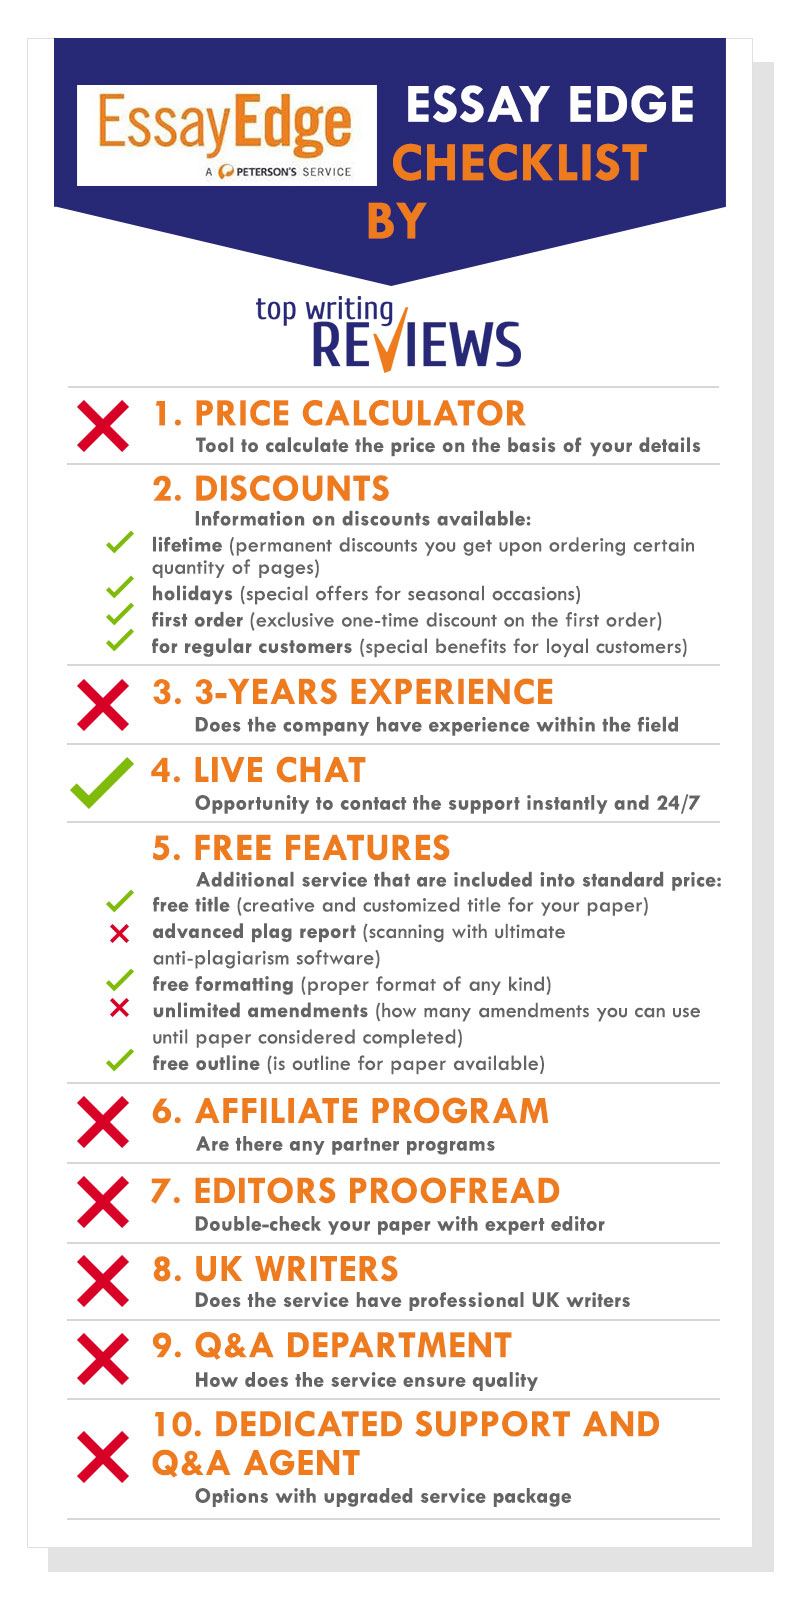 004 Checklist Review Of Essayedge By Topwritingreviews Essay Example Unusual Edge Personal Statement Pricing Full